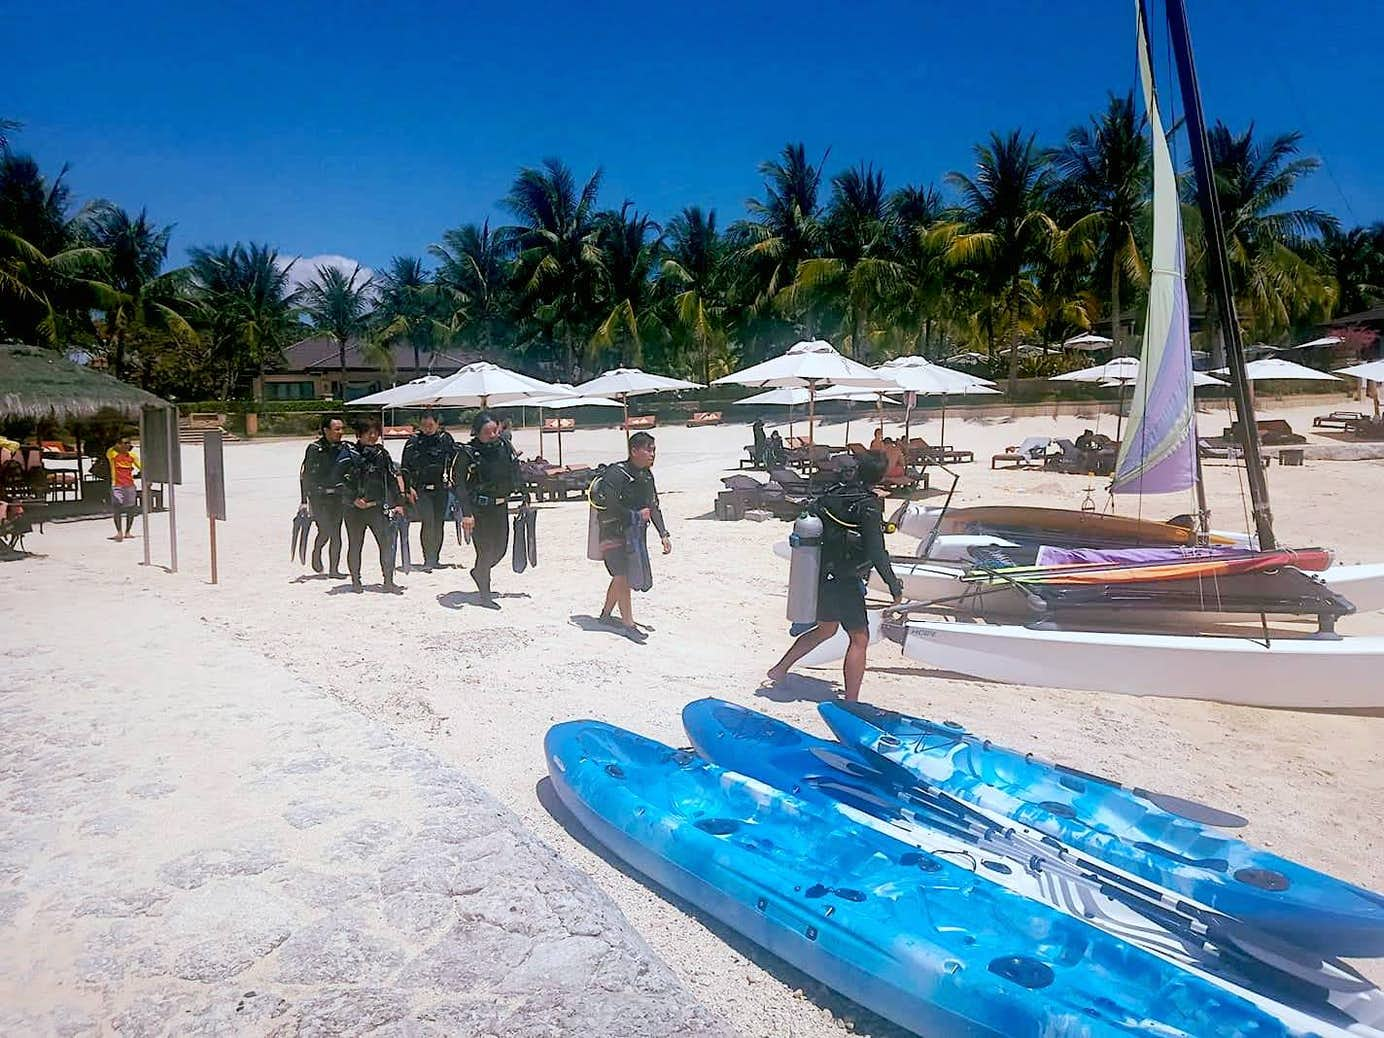 Divers about to board their boat for a diving session in Cebu